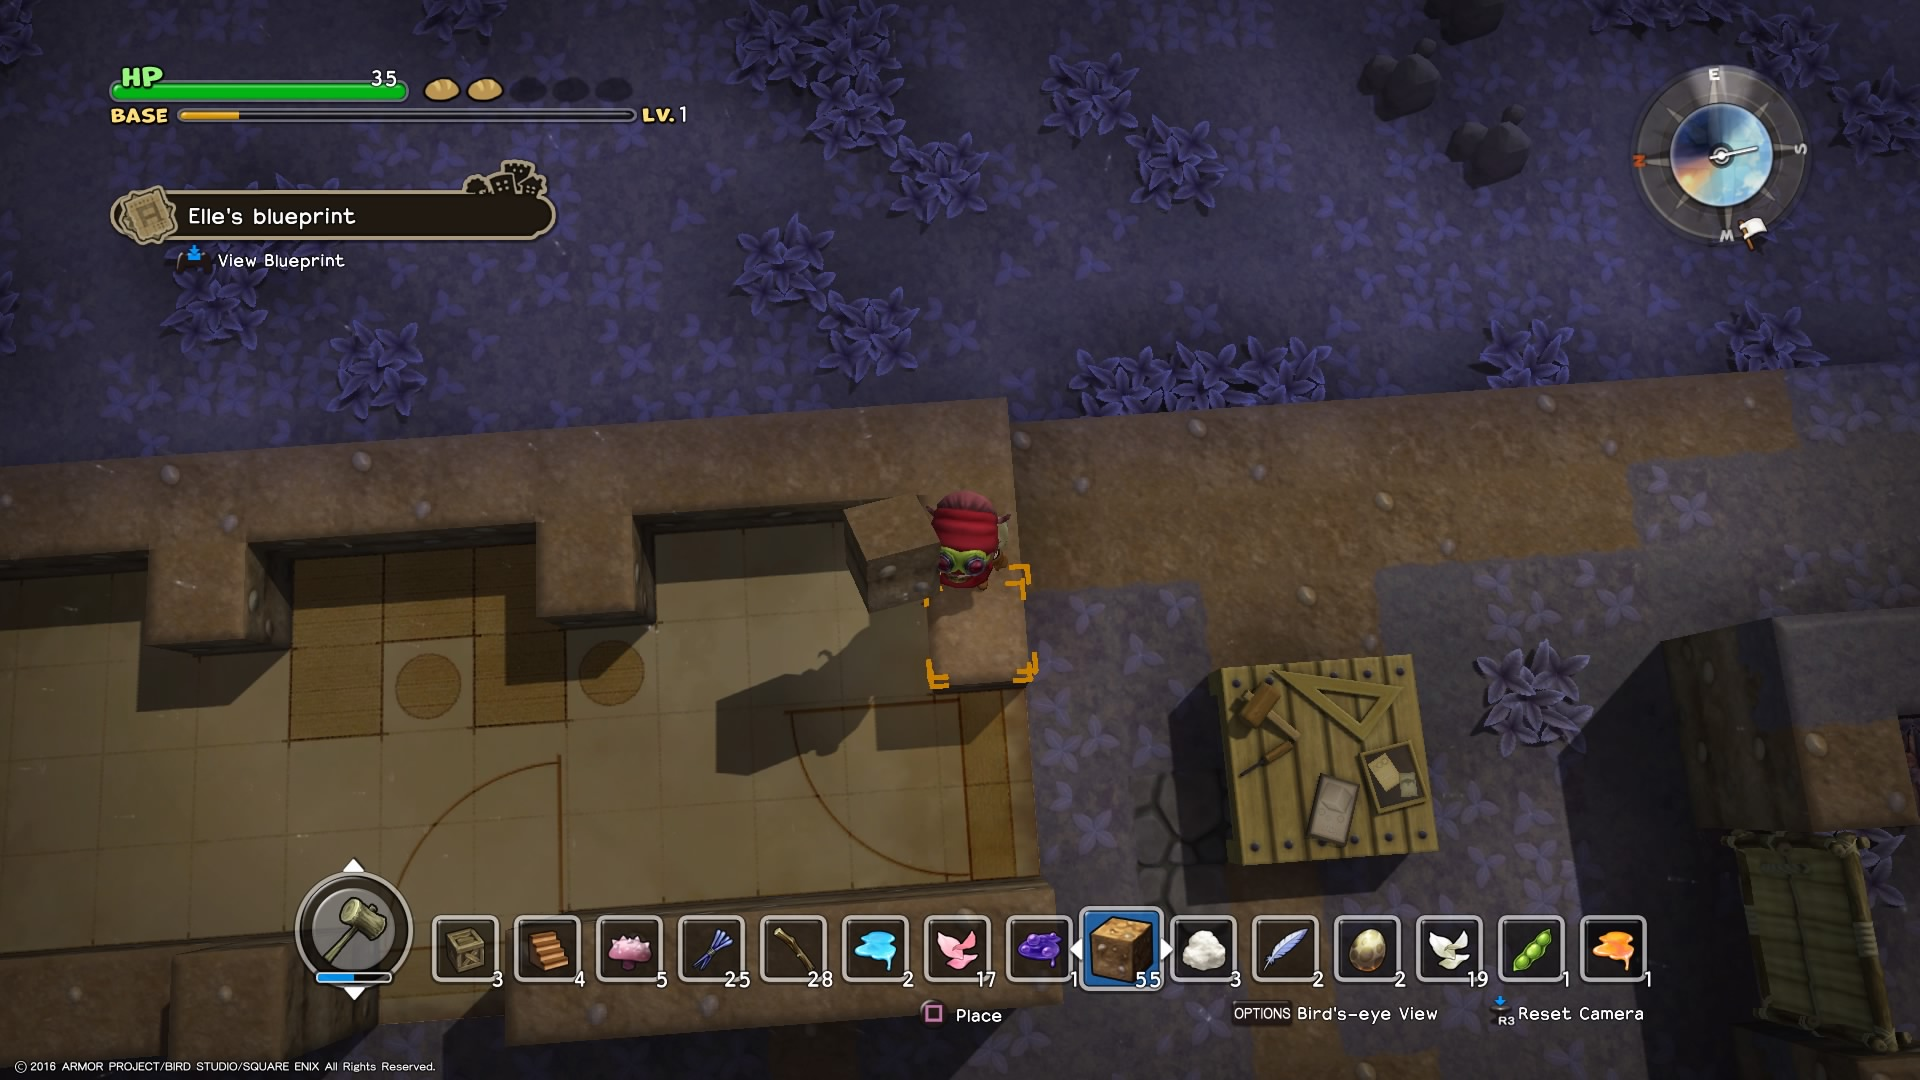 Dragon quest builders how to unlock doors in chapter 2 by creating can sometimes lead to sticking pointslike say for example where on earth you can get some keys to unlock the doors scattered around chapter 2 malvernweather Image collections